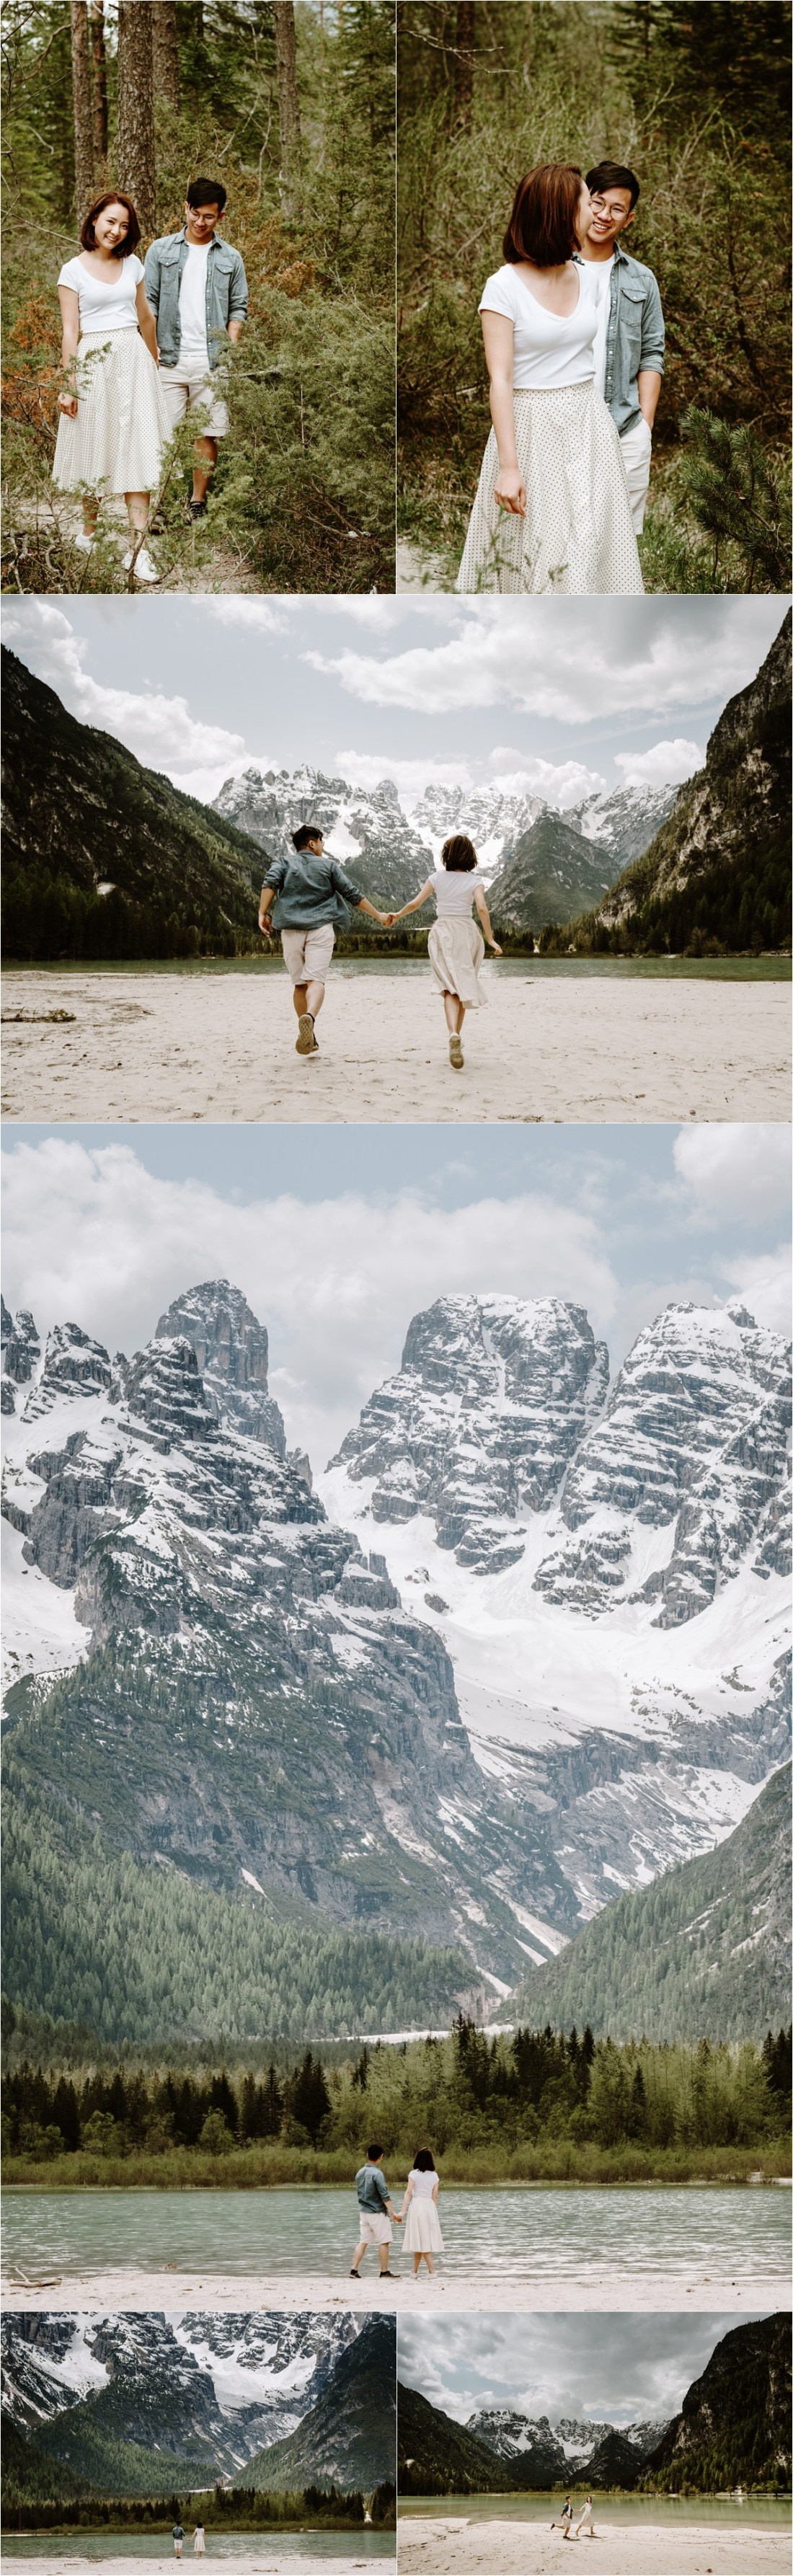 Chinese couple hike to the shore of a mountain lake for their engagement shoot in the Italian Alps. Photo by Dolomites photographer Wild Connections Photography